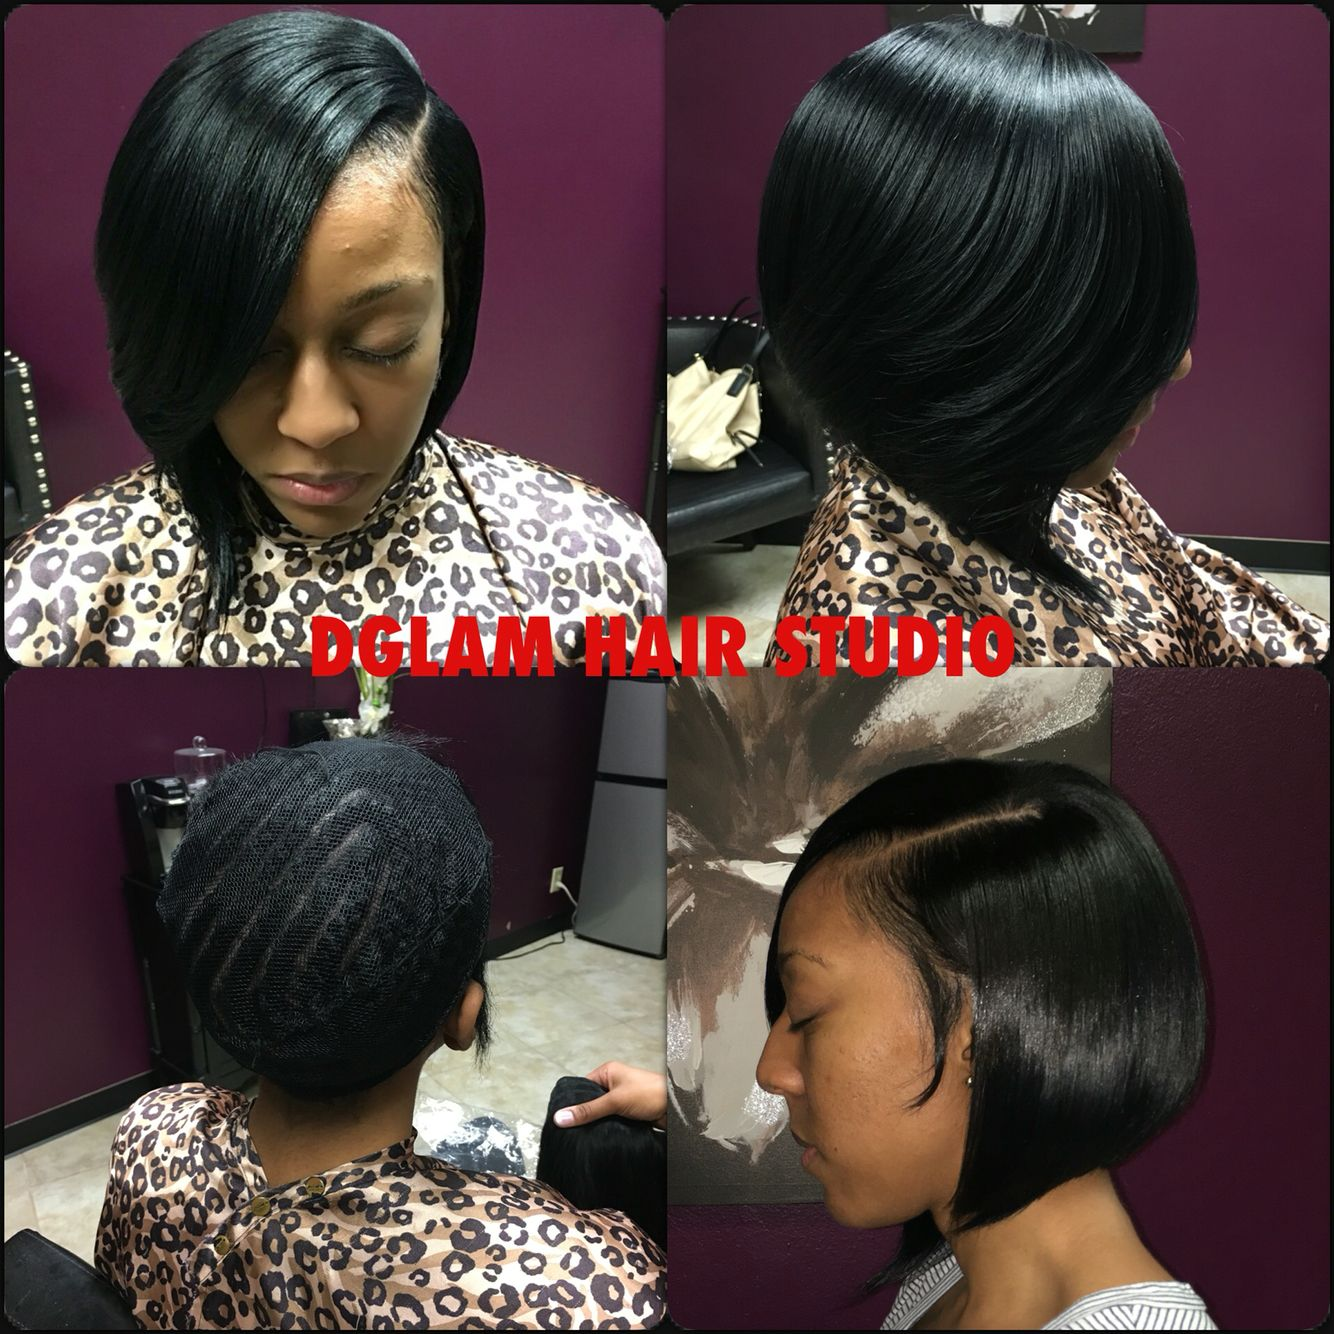 Pin On Hair By Dglam Hair Studio